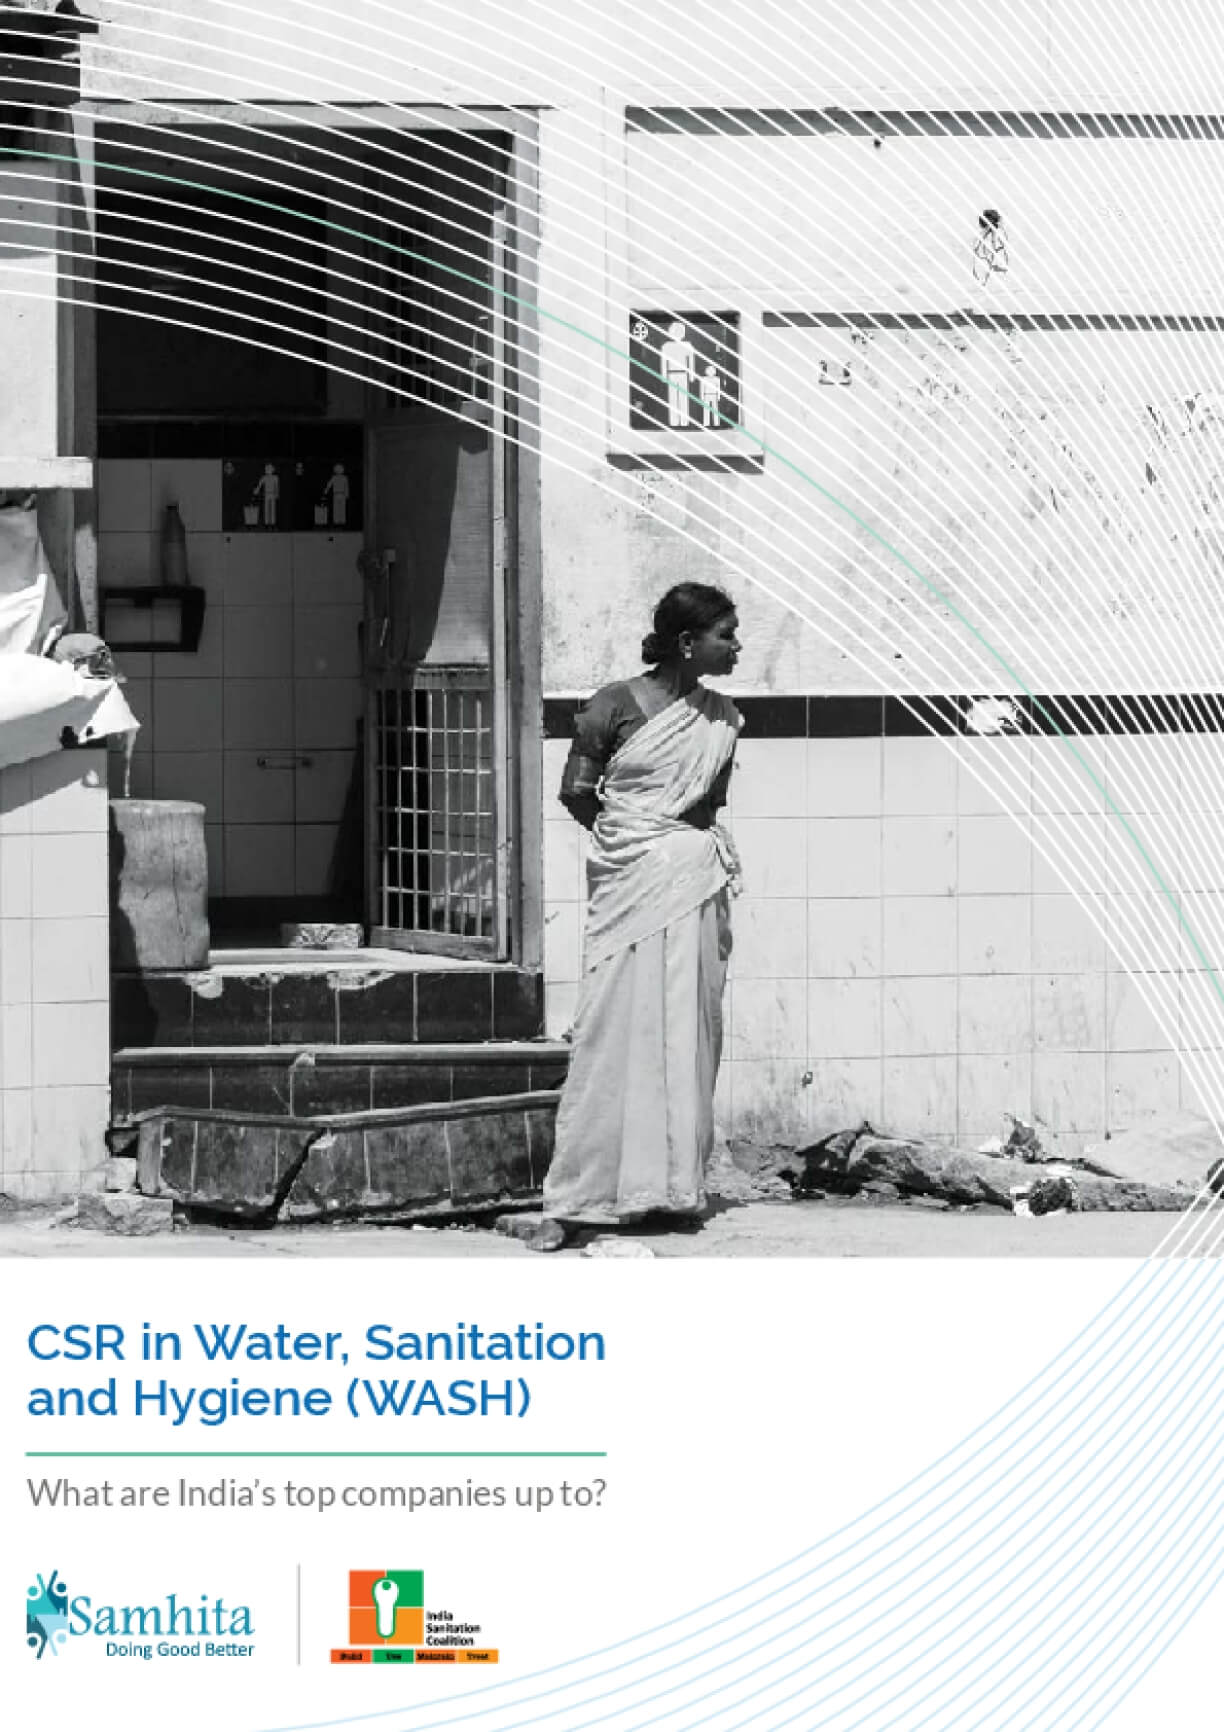 CSR in Water, Sanitation and Hygiene (WASH): What are India's top companies up to?